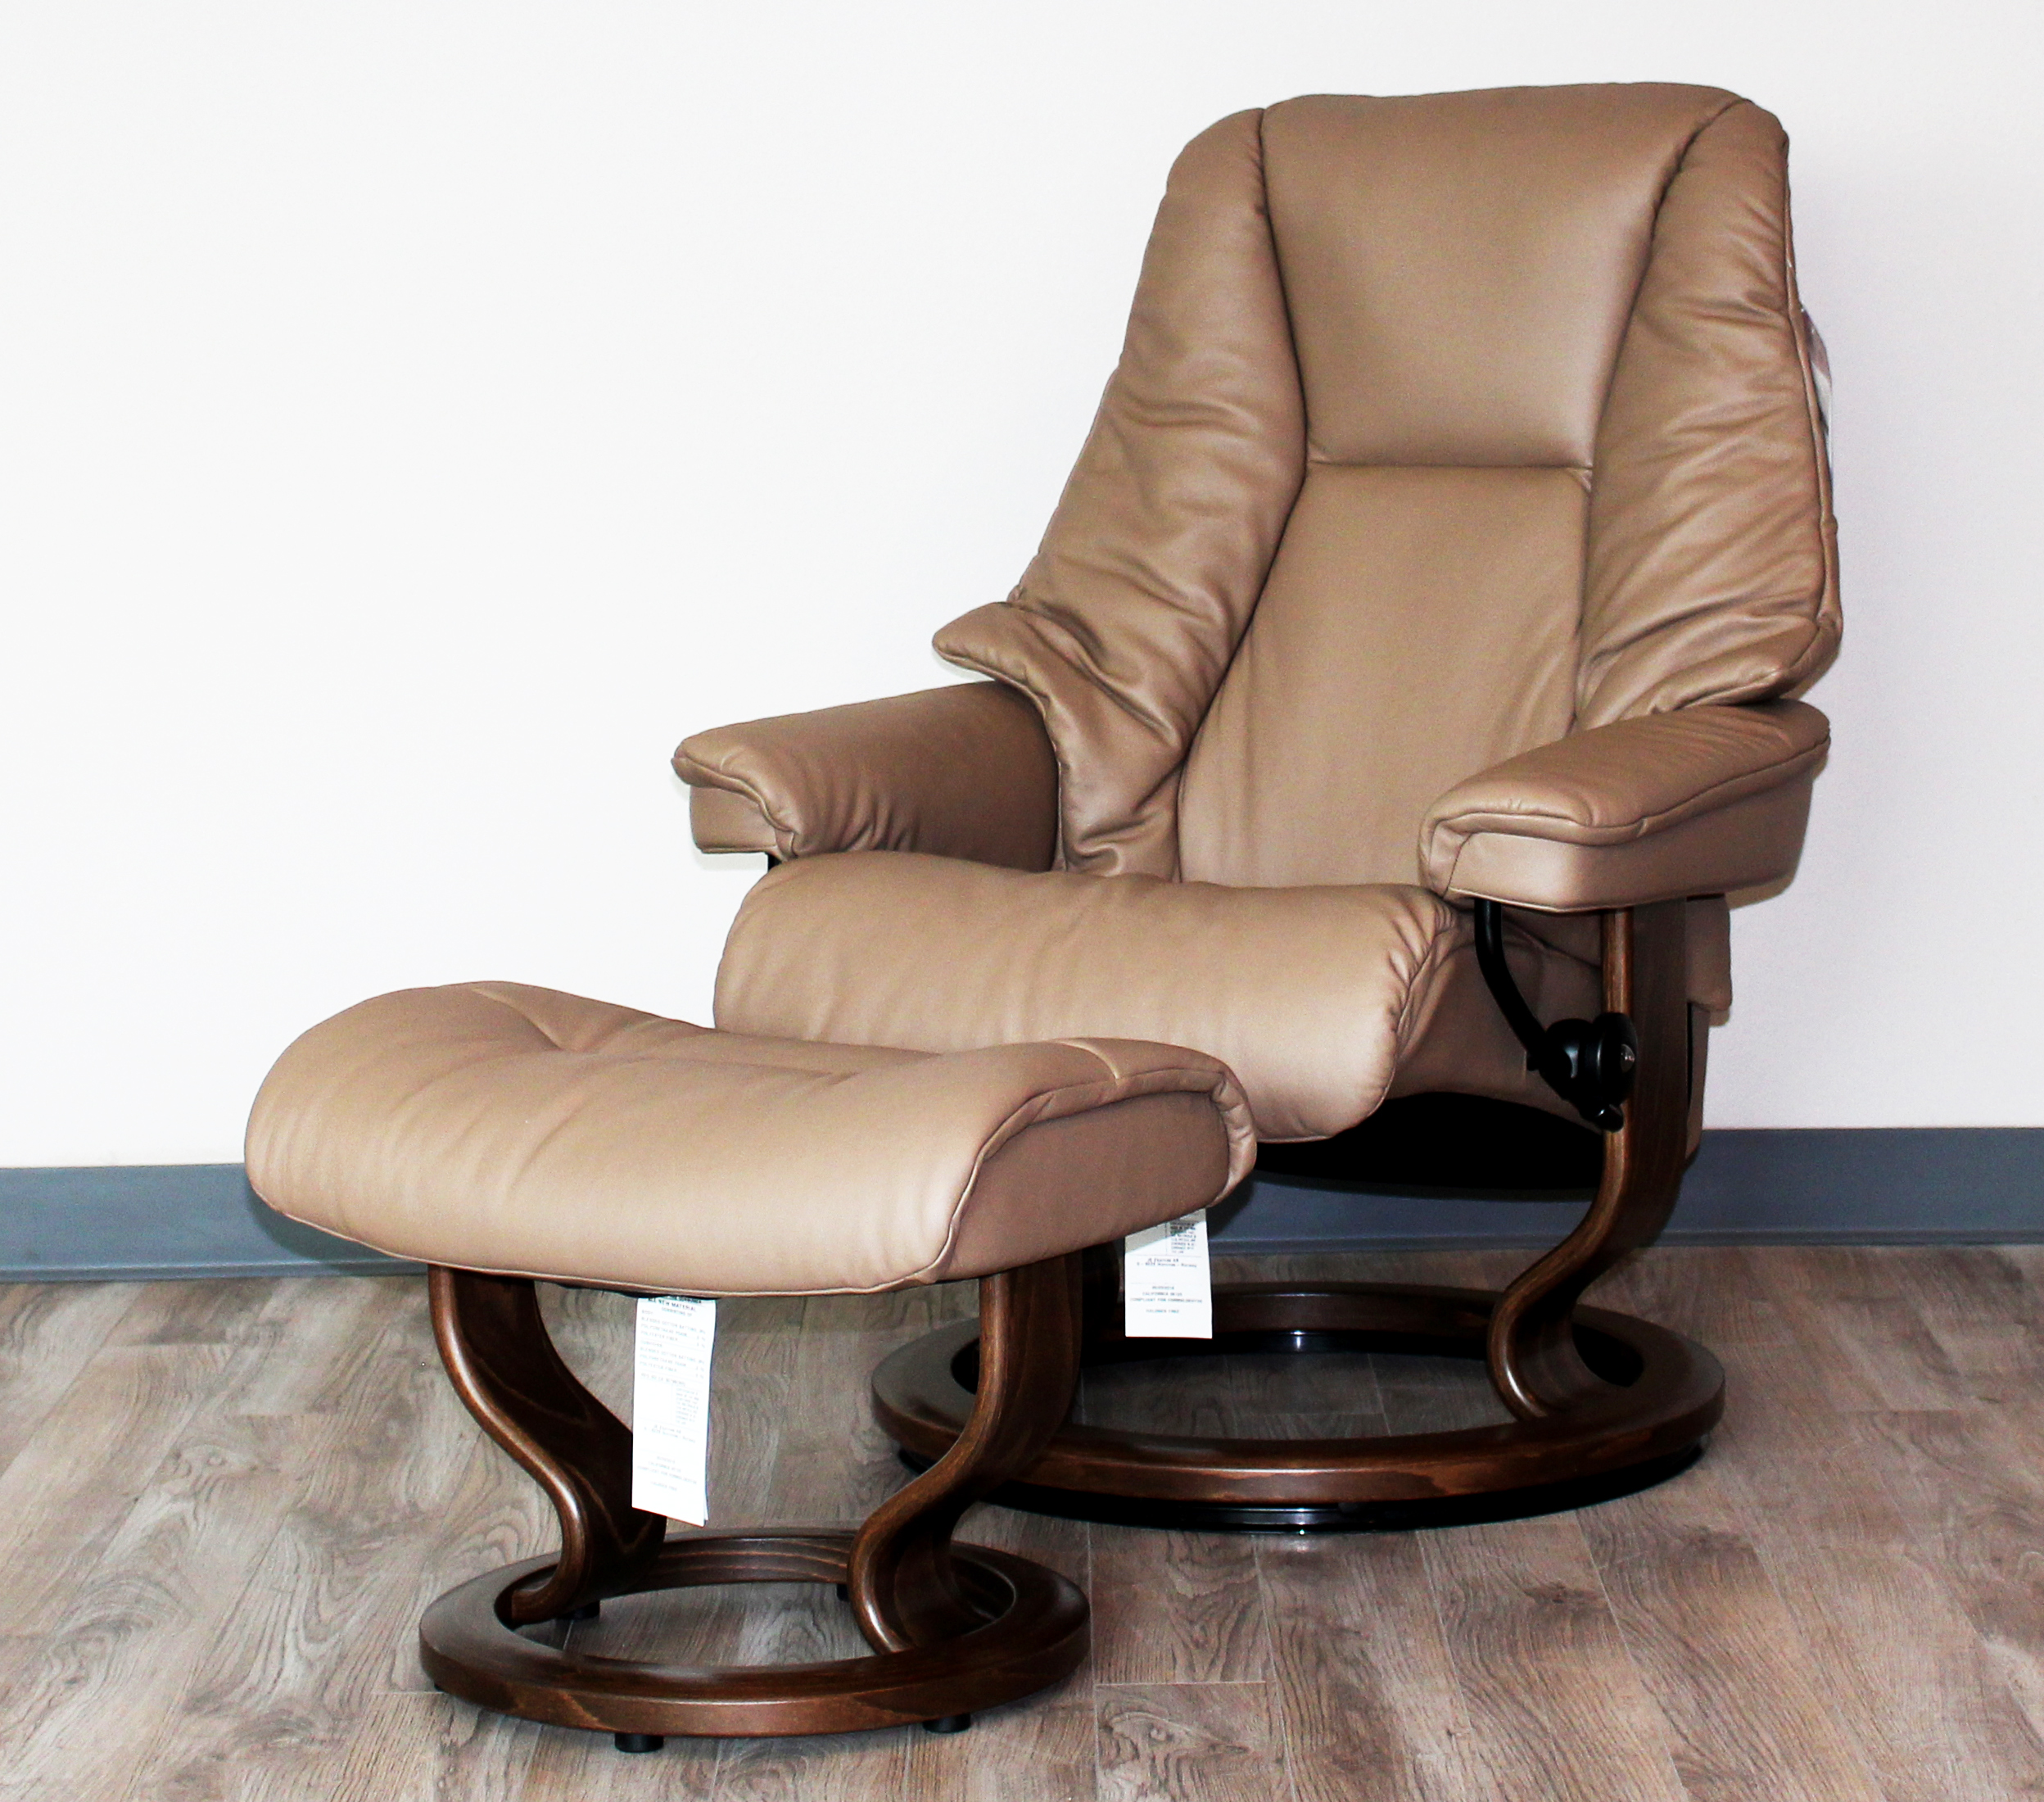 Stressless Paloma Stressless Live Recliner Classic Wood Base Chair And Ottoman By Ekornes